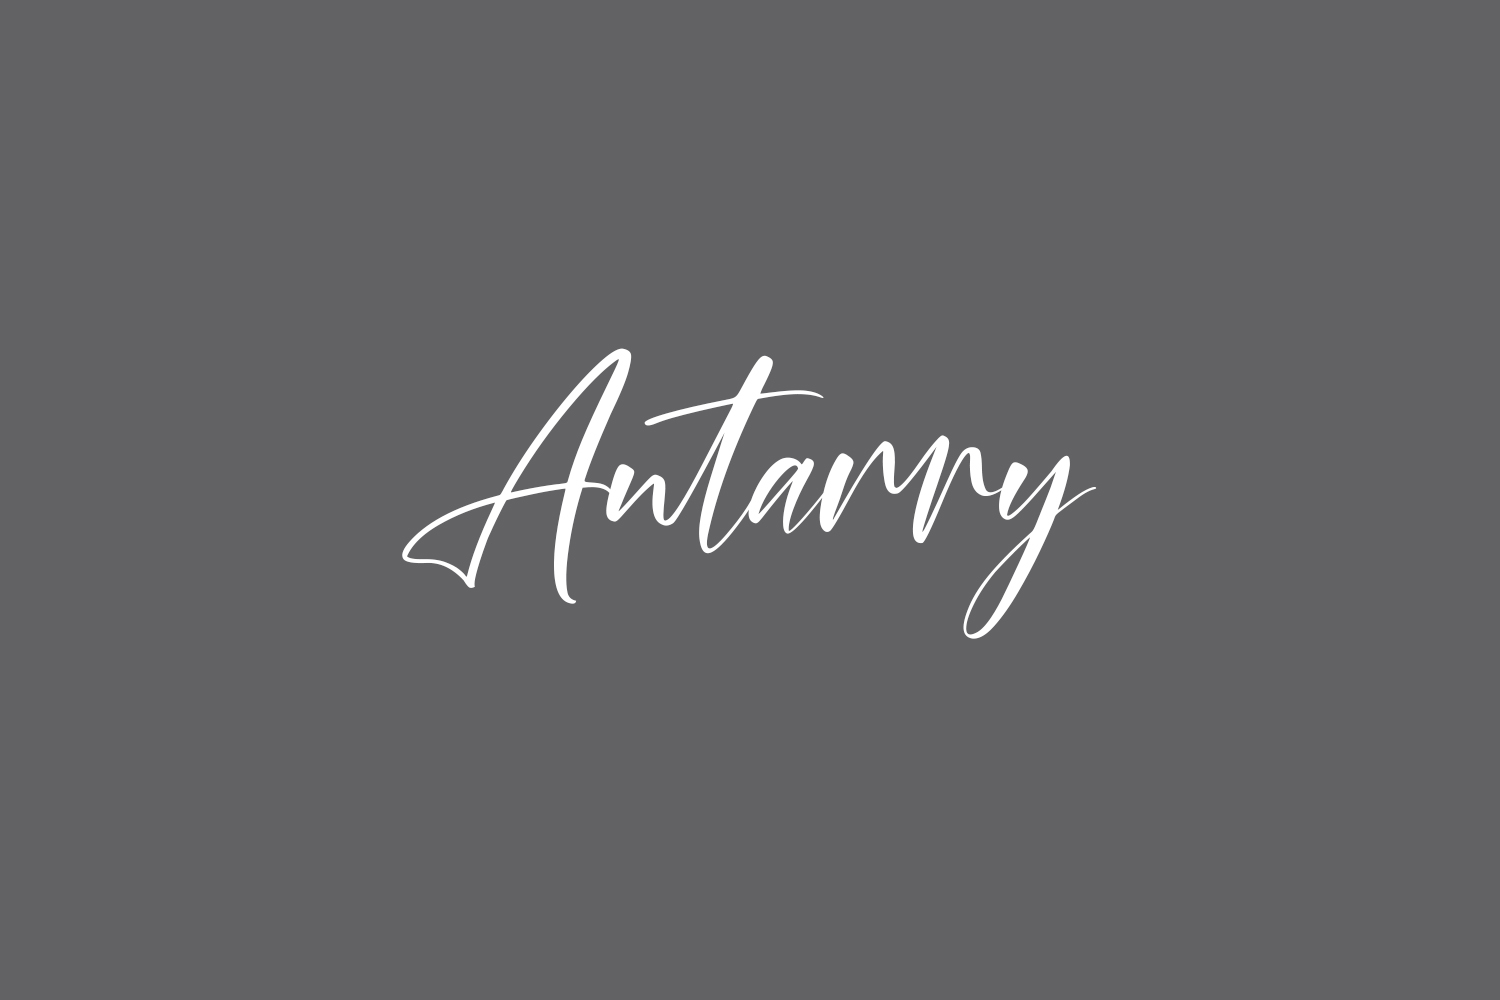 Antarry Free Font